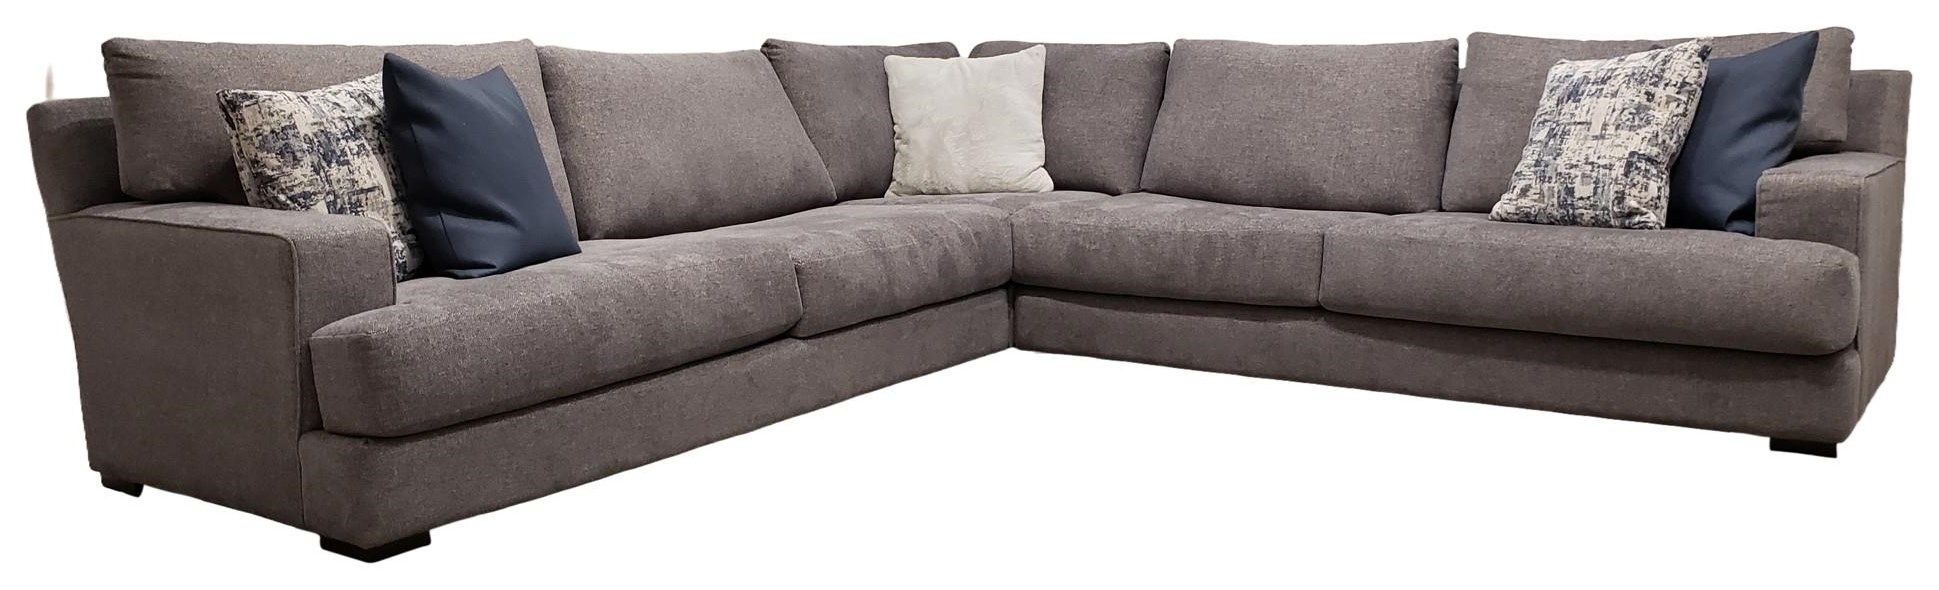 2702 Sectional